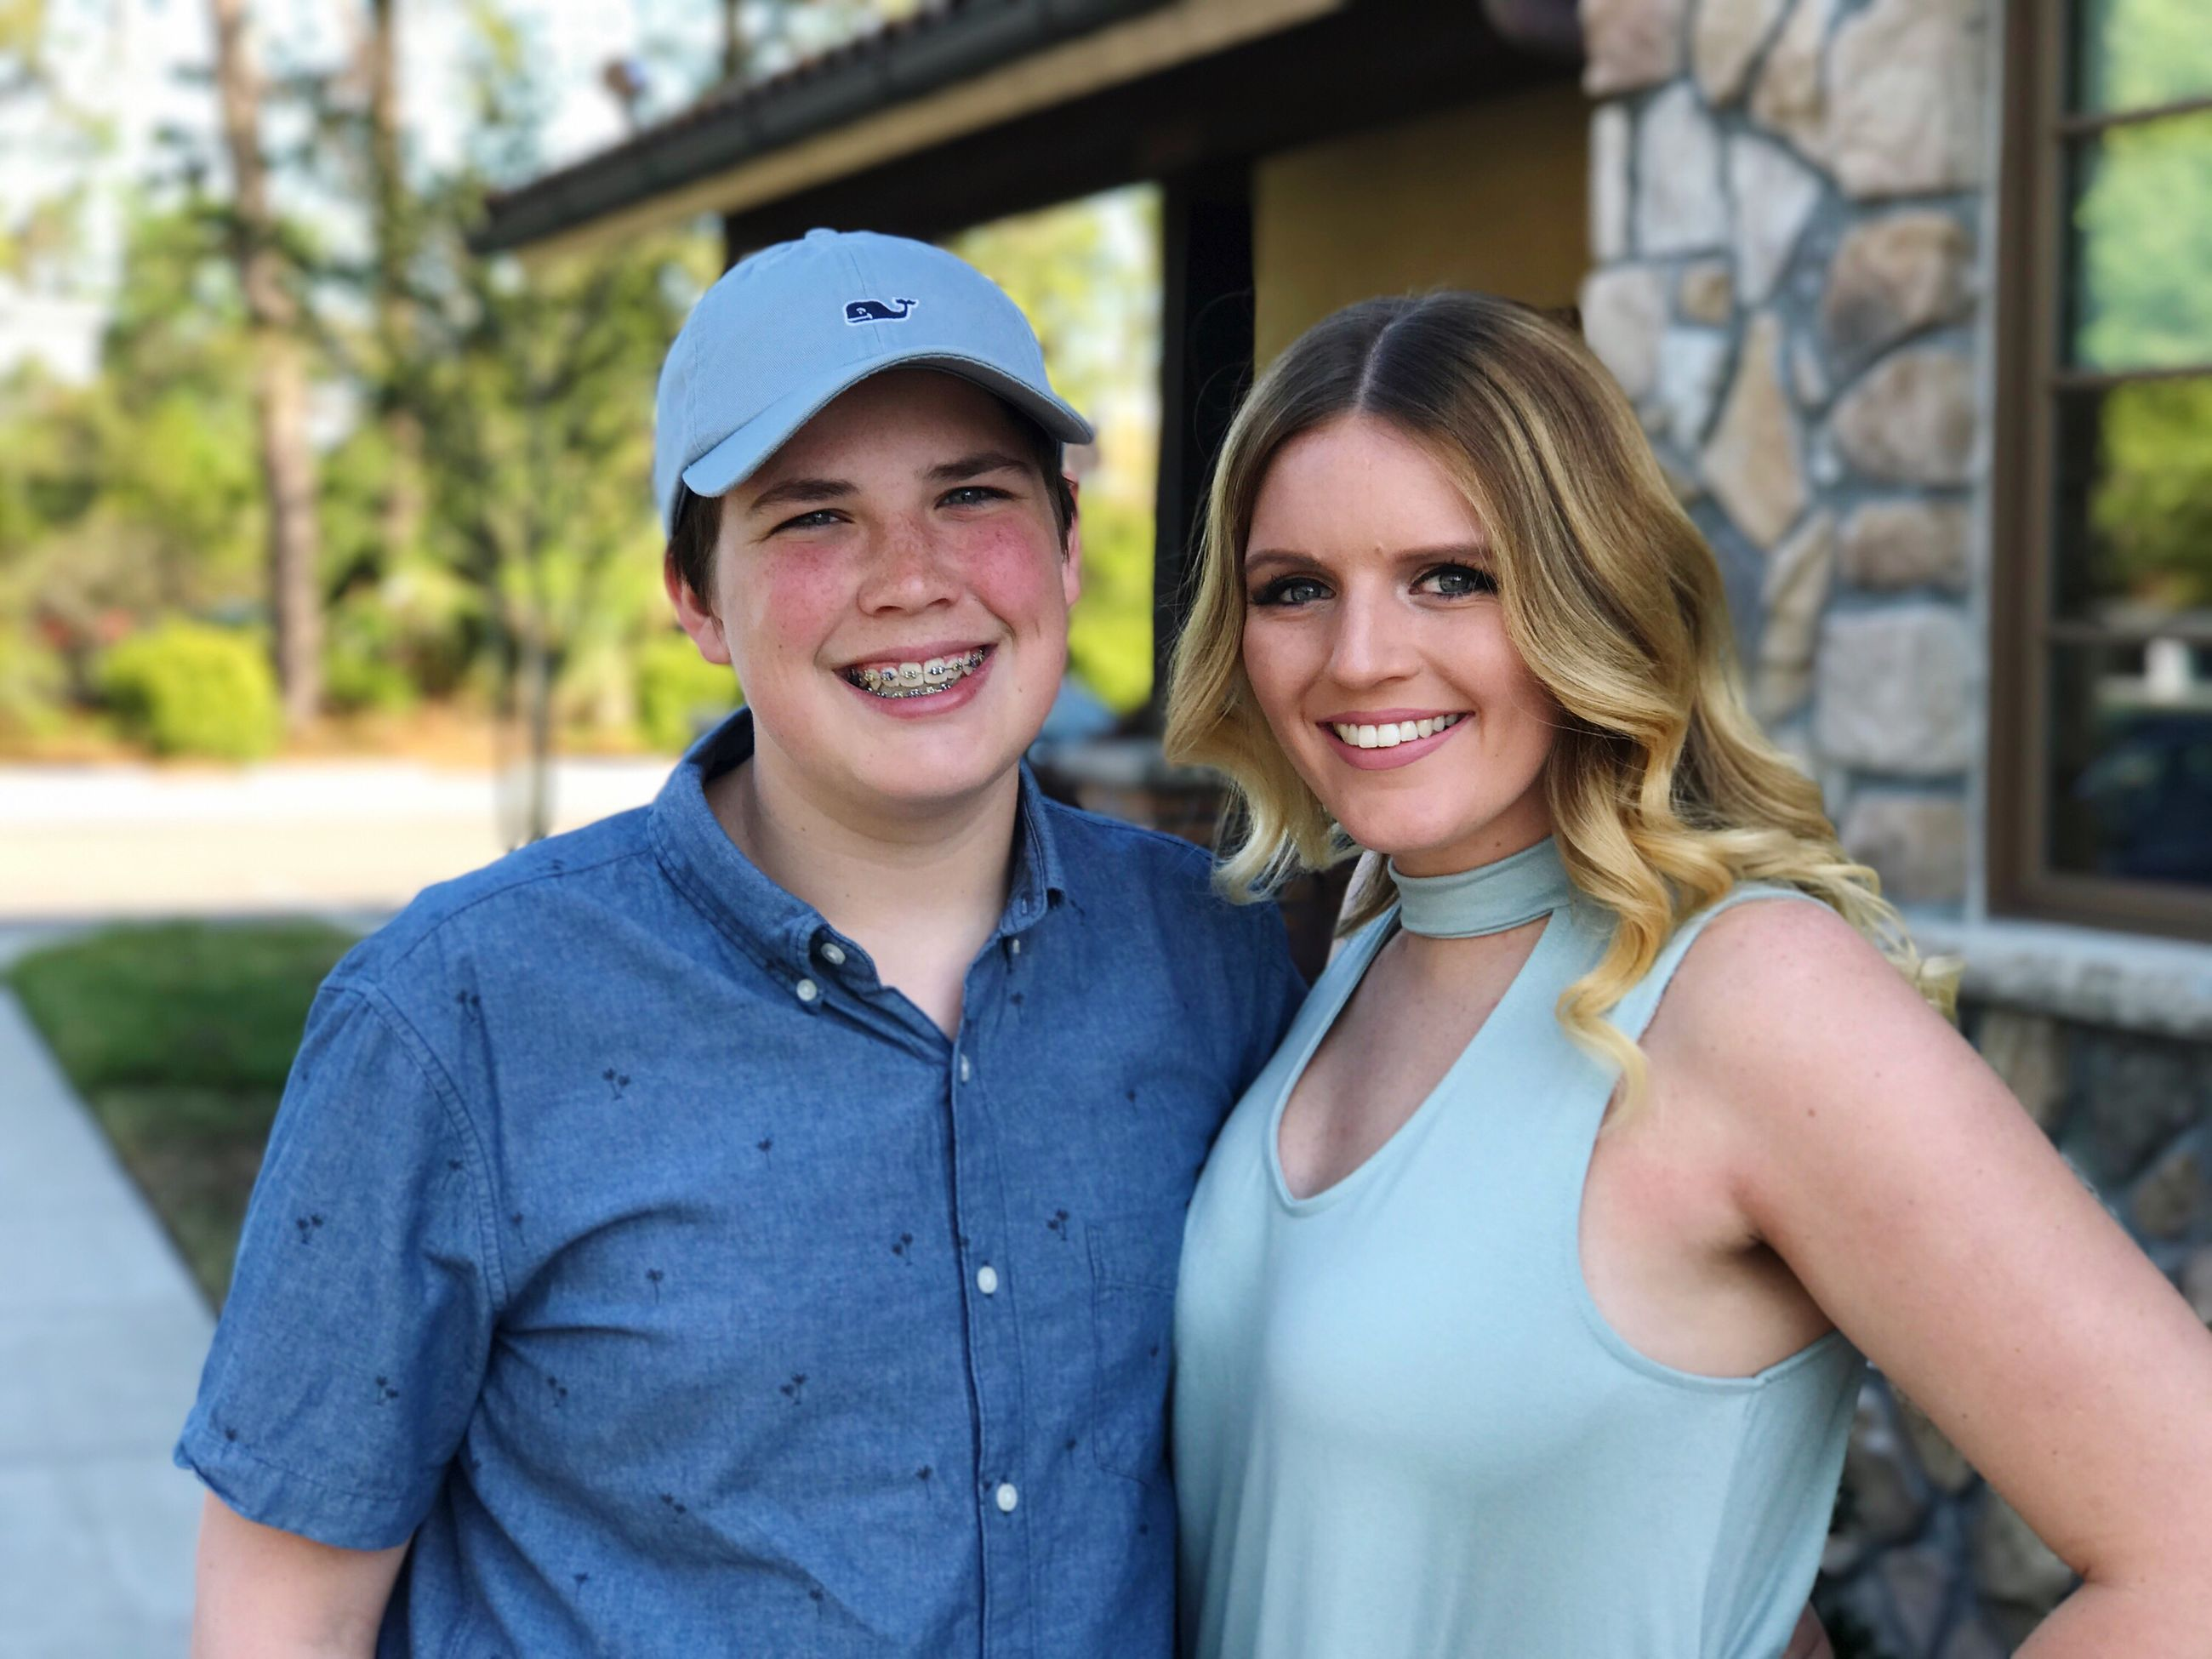 smiling, happiness, togetherness, portrait, two people, looking at camera, adults only, love, toothy smile, blond hair, friendship, bonding, people, outdoors, adult, leisure activity, women, baseball cap, young women, cheerful, day, standing, young adult, only women